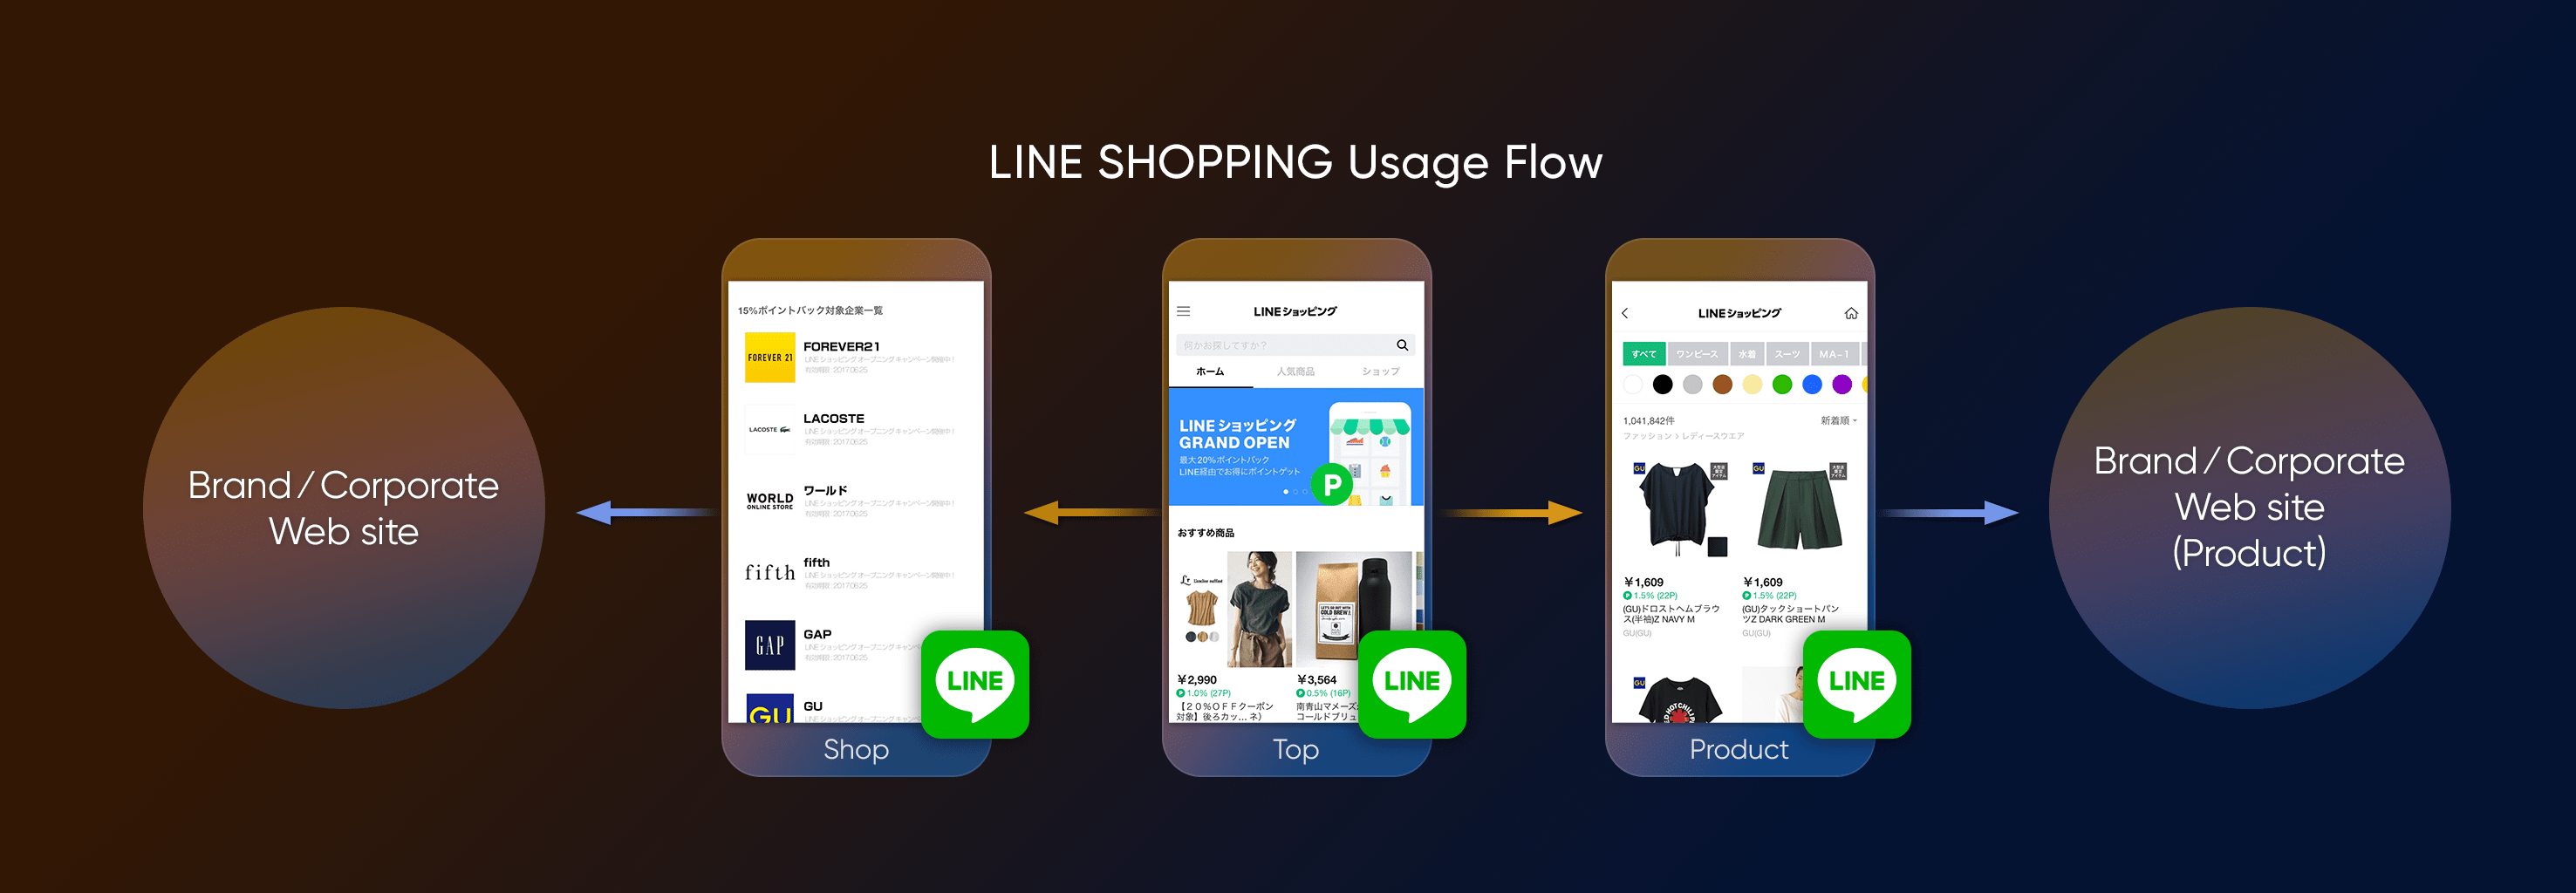 line_shopping_02